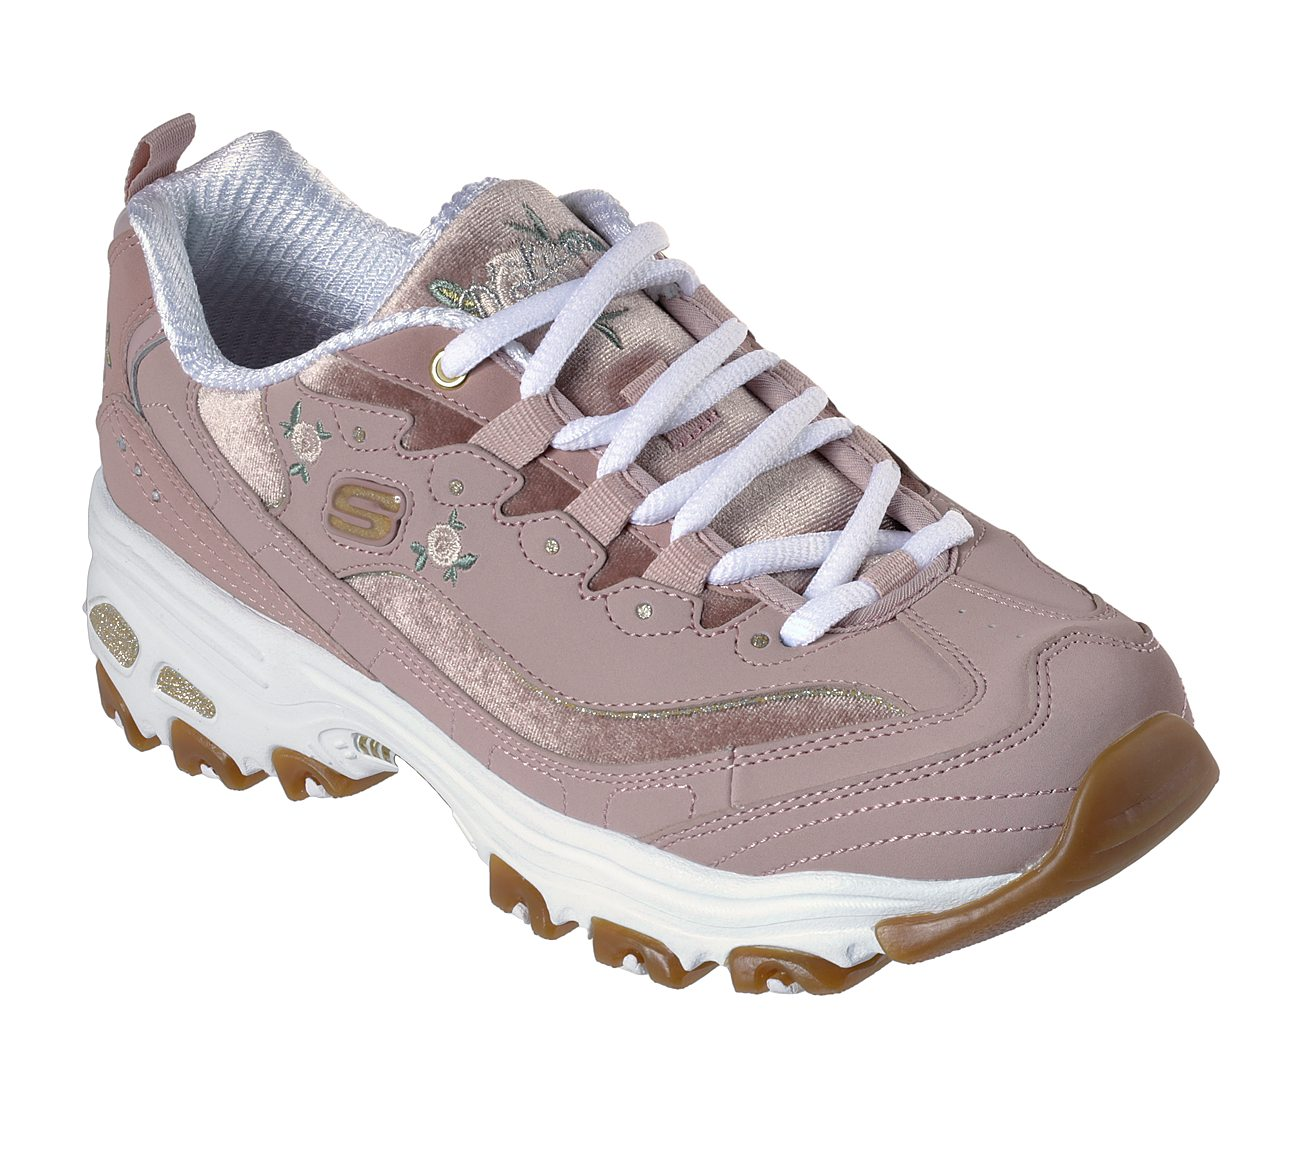 7861c60226e7 Buy SKECHERS D Lites - Rose Blooms D Lites Shoes only  70.00